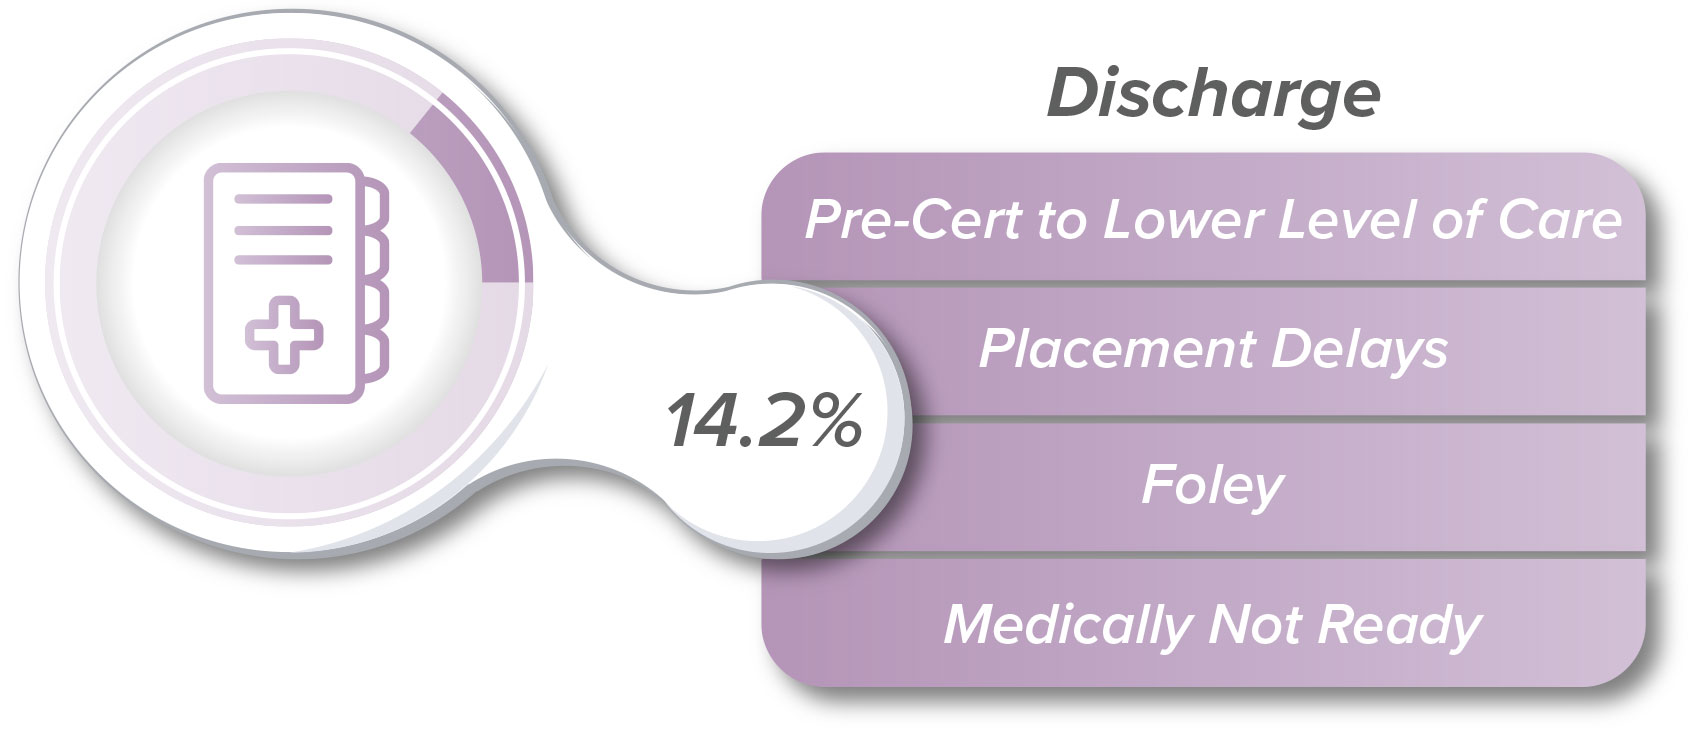 Common discharge delays include pre-cert to lower levels of care, placement delays, foley, and medically not ready.